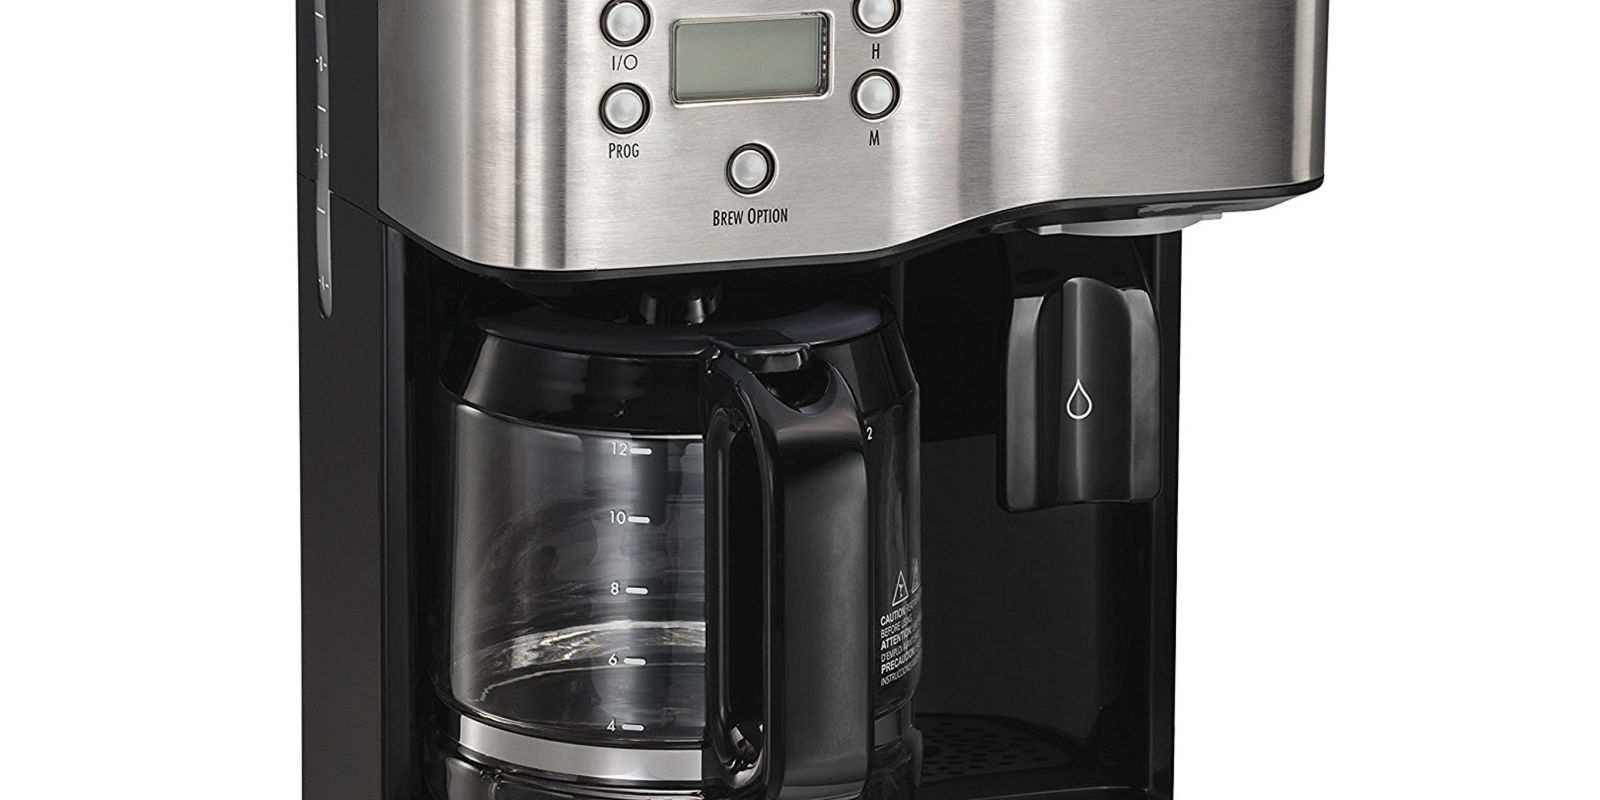 Drip Coffee Maker Hot Water : Hamilton Beach Coffeemaker & Hot Water Dispenser Review, Price and Features